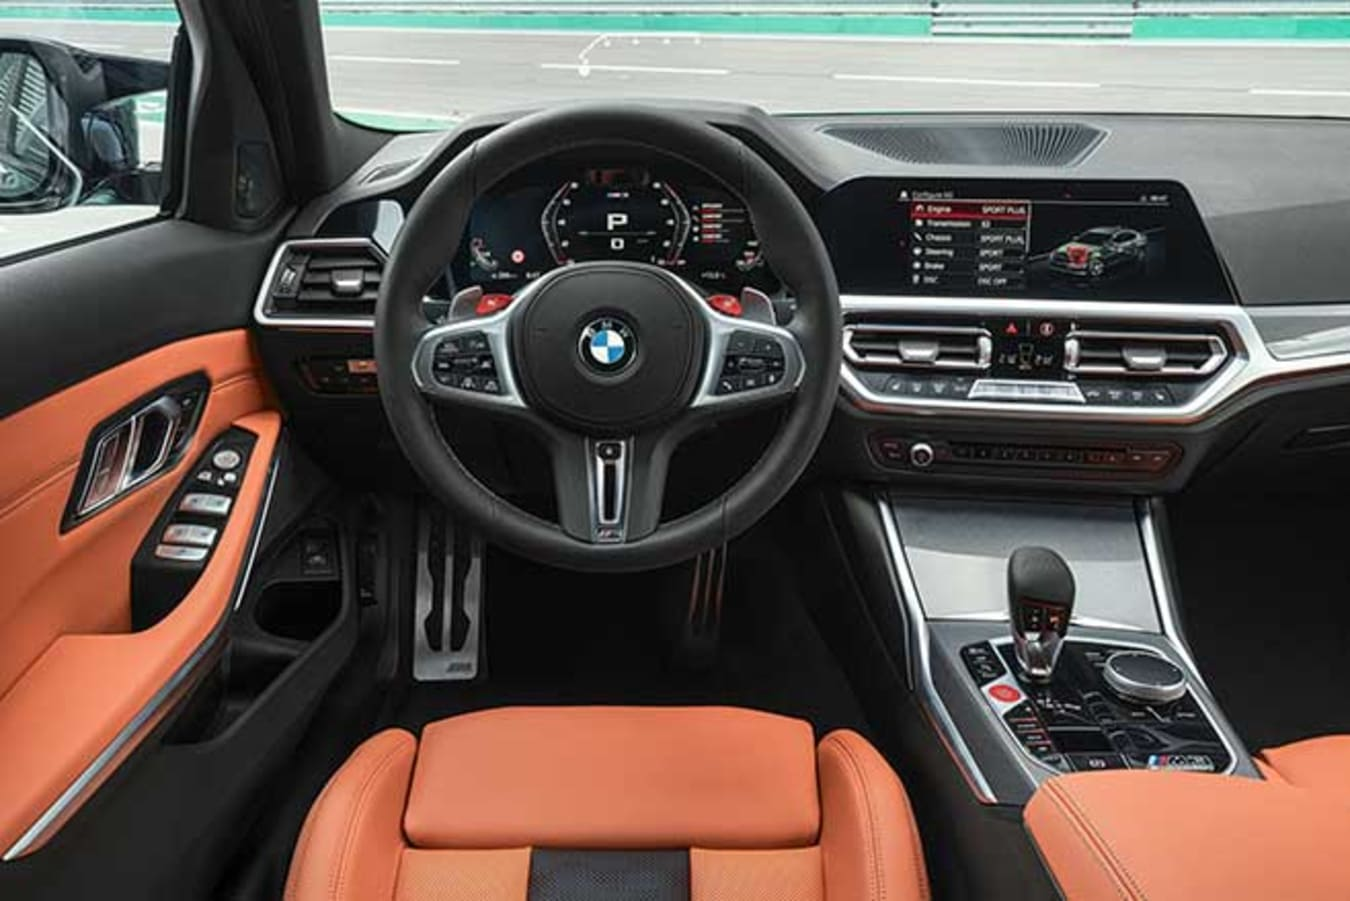 The 2021 BMW M3 interior features all of BMW's latest technology.